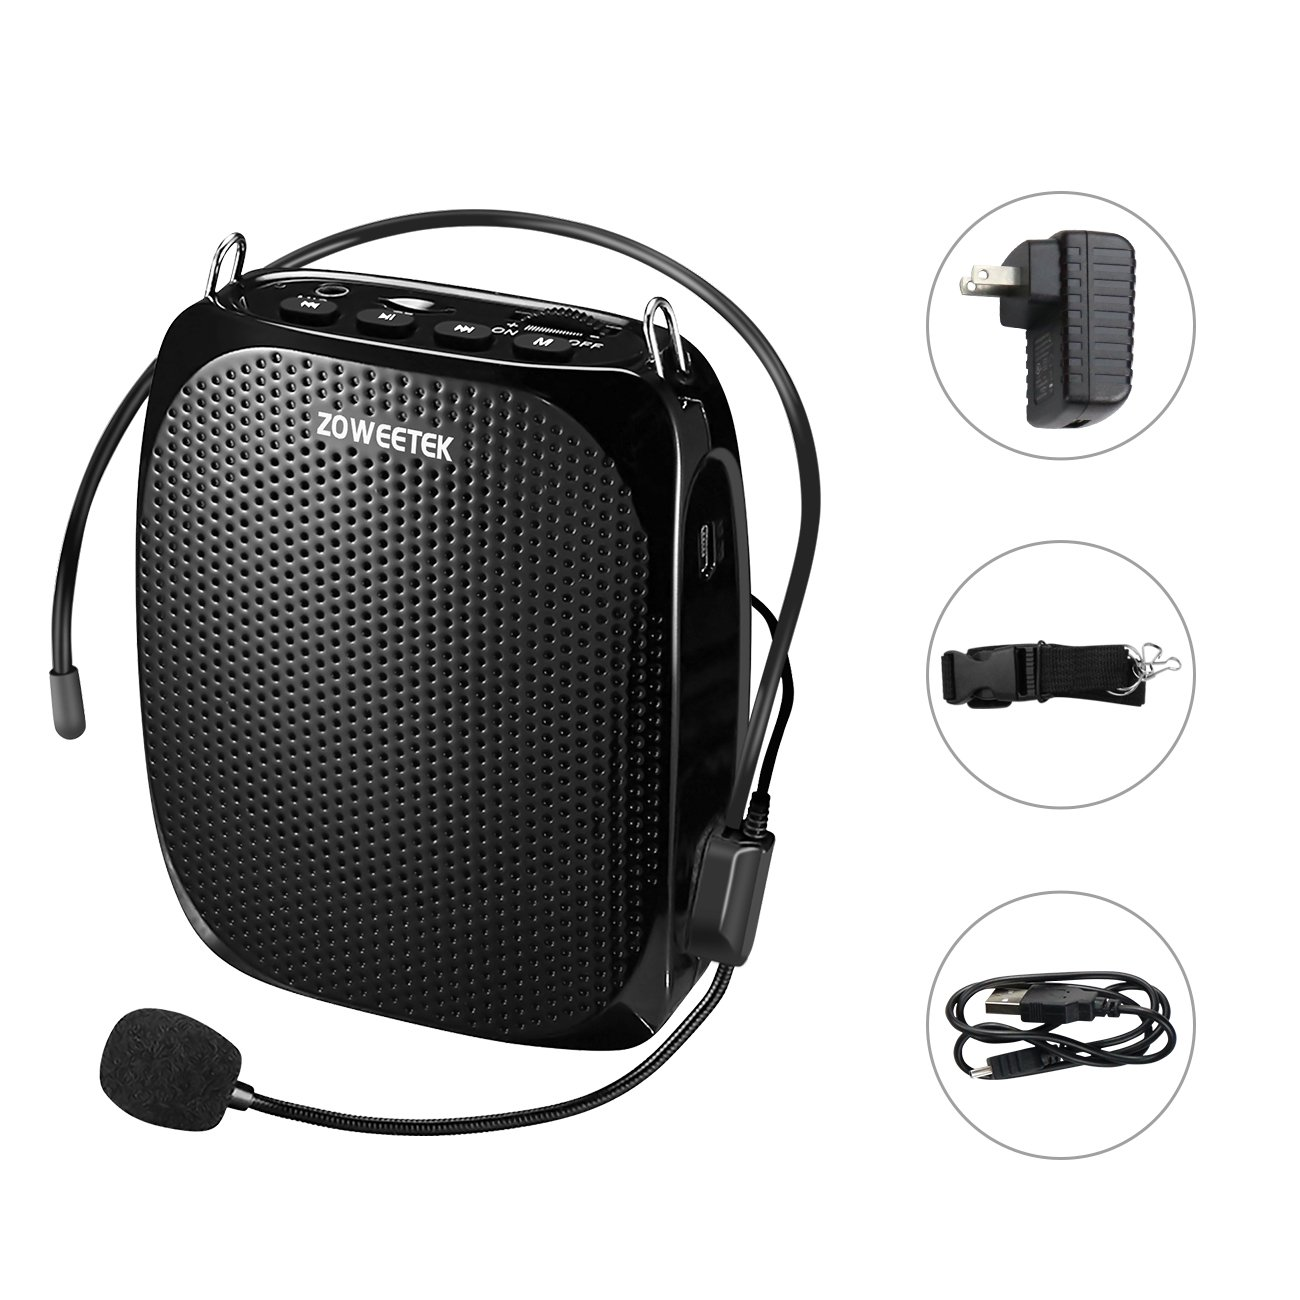 Zoweetek Portable Rechargeable Voice Amplifier With Wired Microphone and Waistband, Supports MP3 Format Audio for Teachers, Tour Guides, Coacher, Training